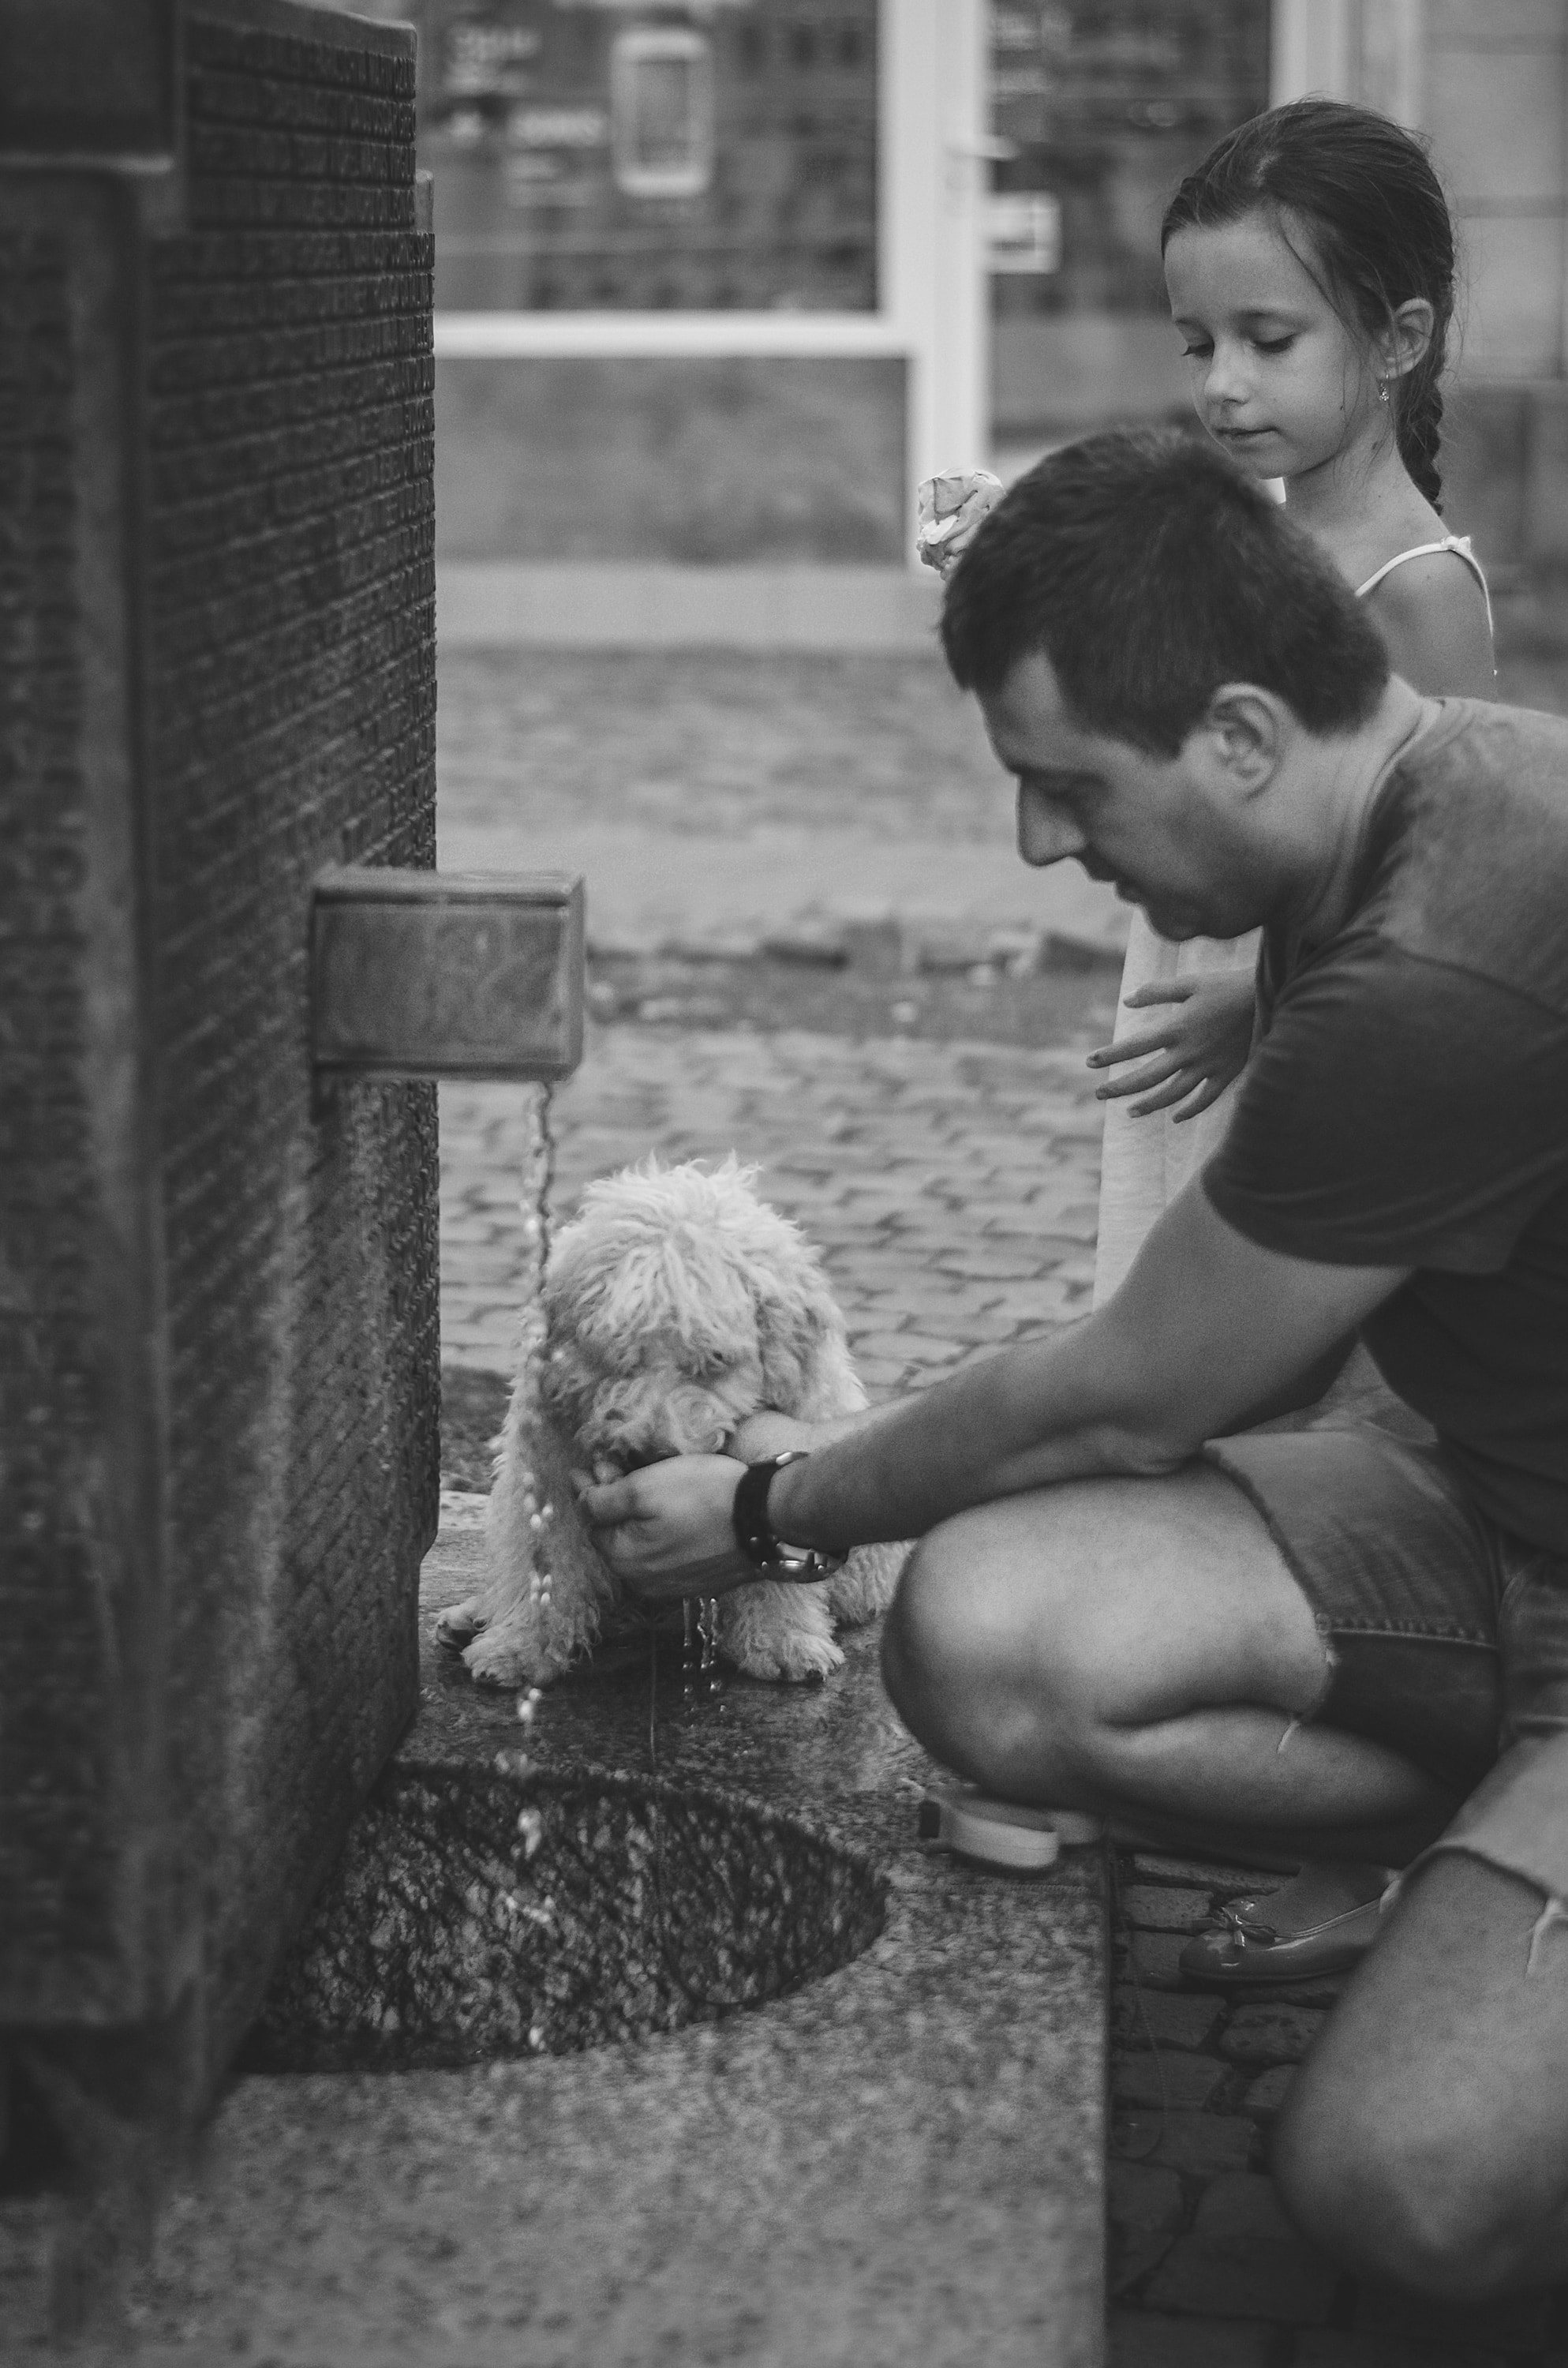 man kneeling beside girl feeding dog in grayscale photograpy